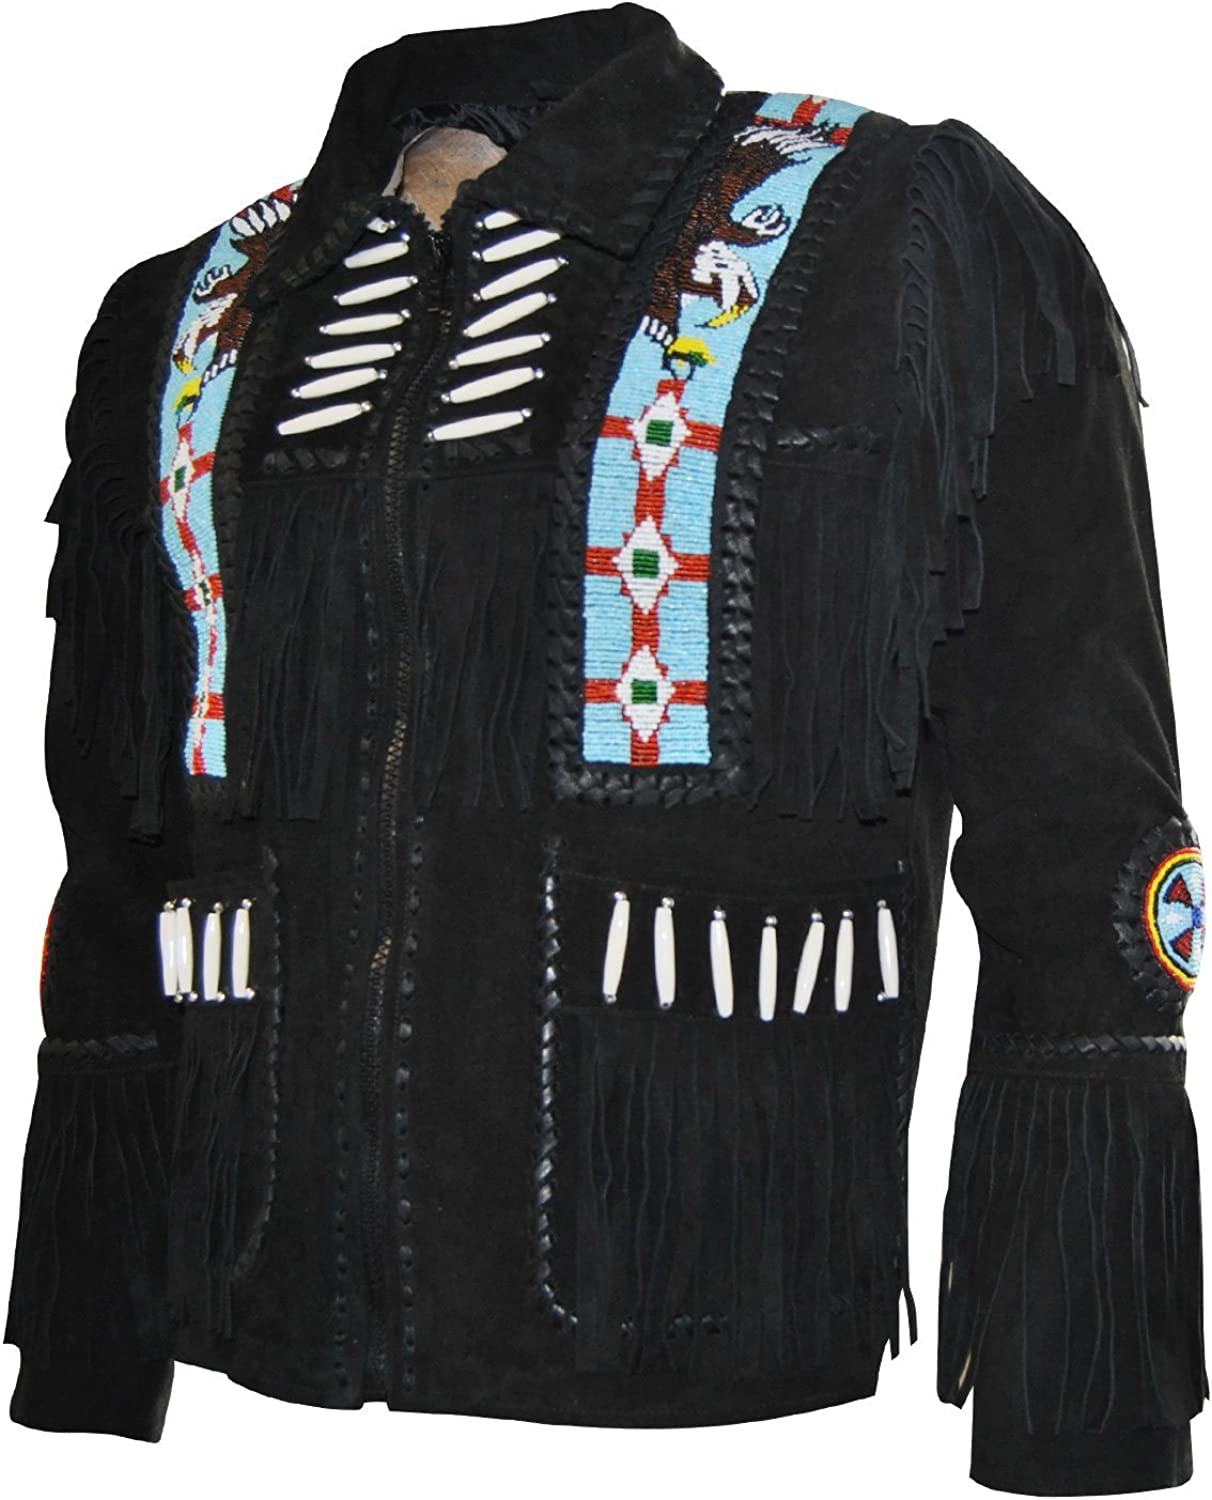 Bone and Beads Handmade Fitters Men Classic Western Cowboy Jacket with Fringe